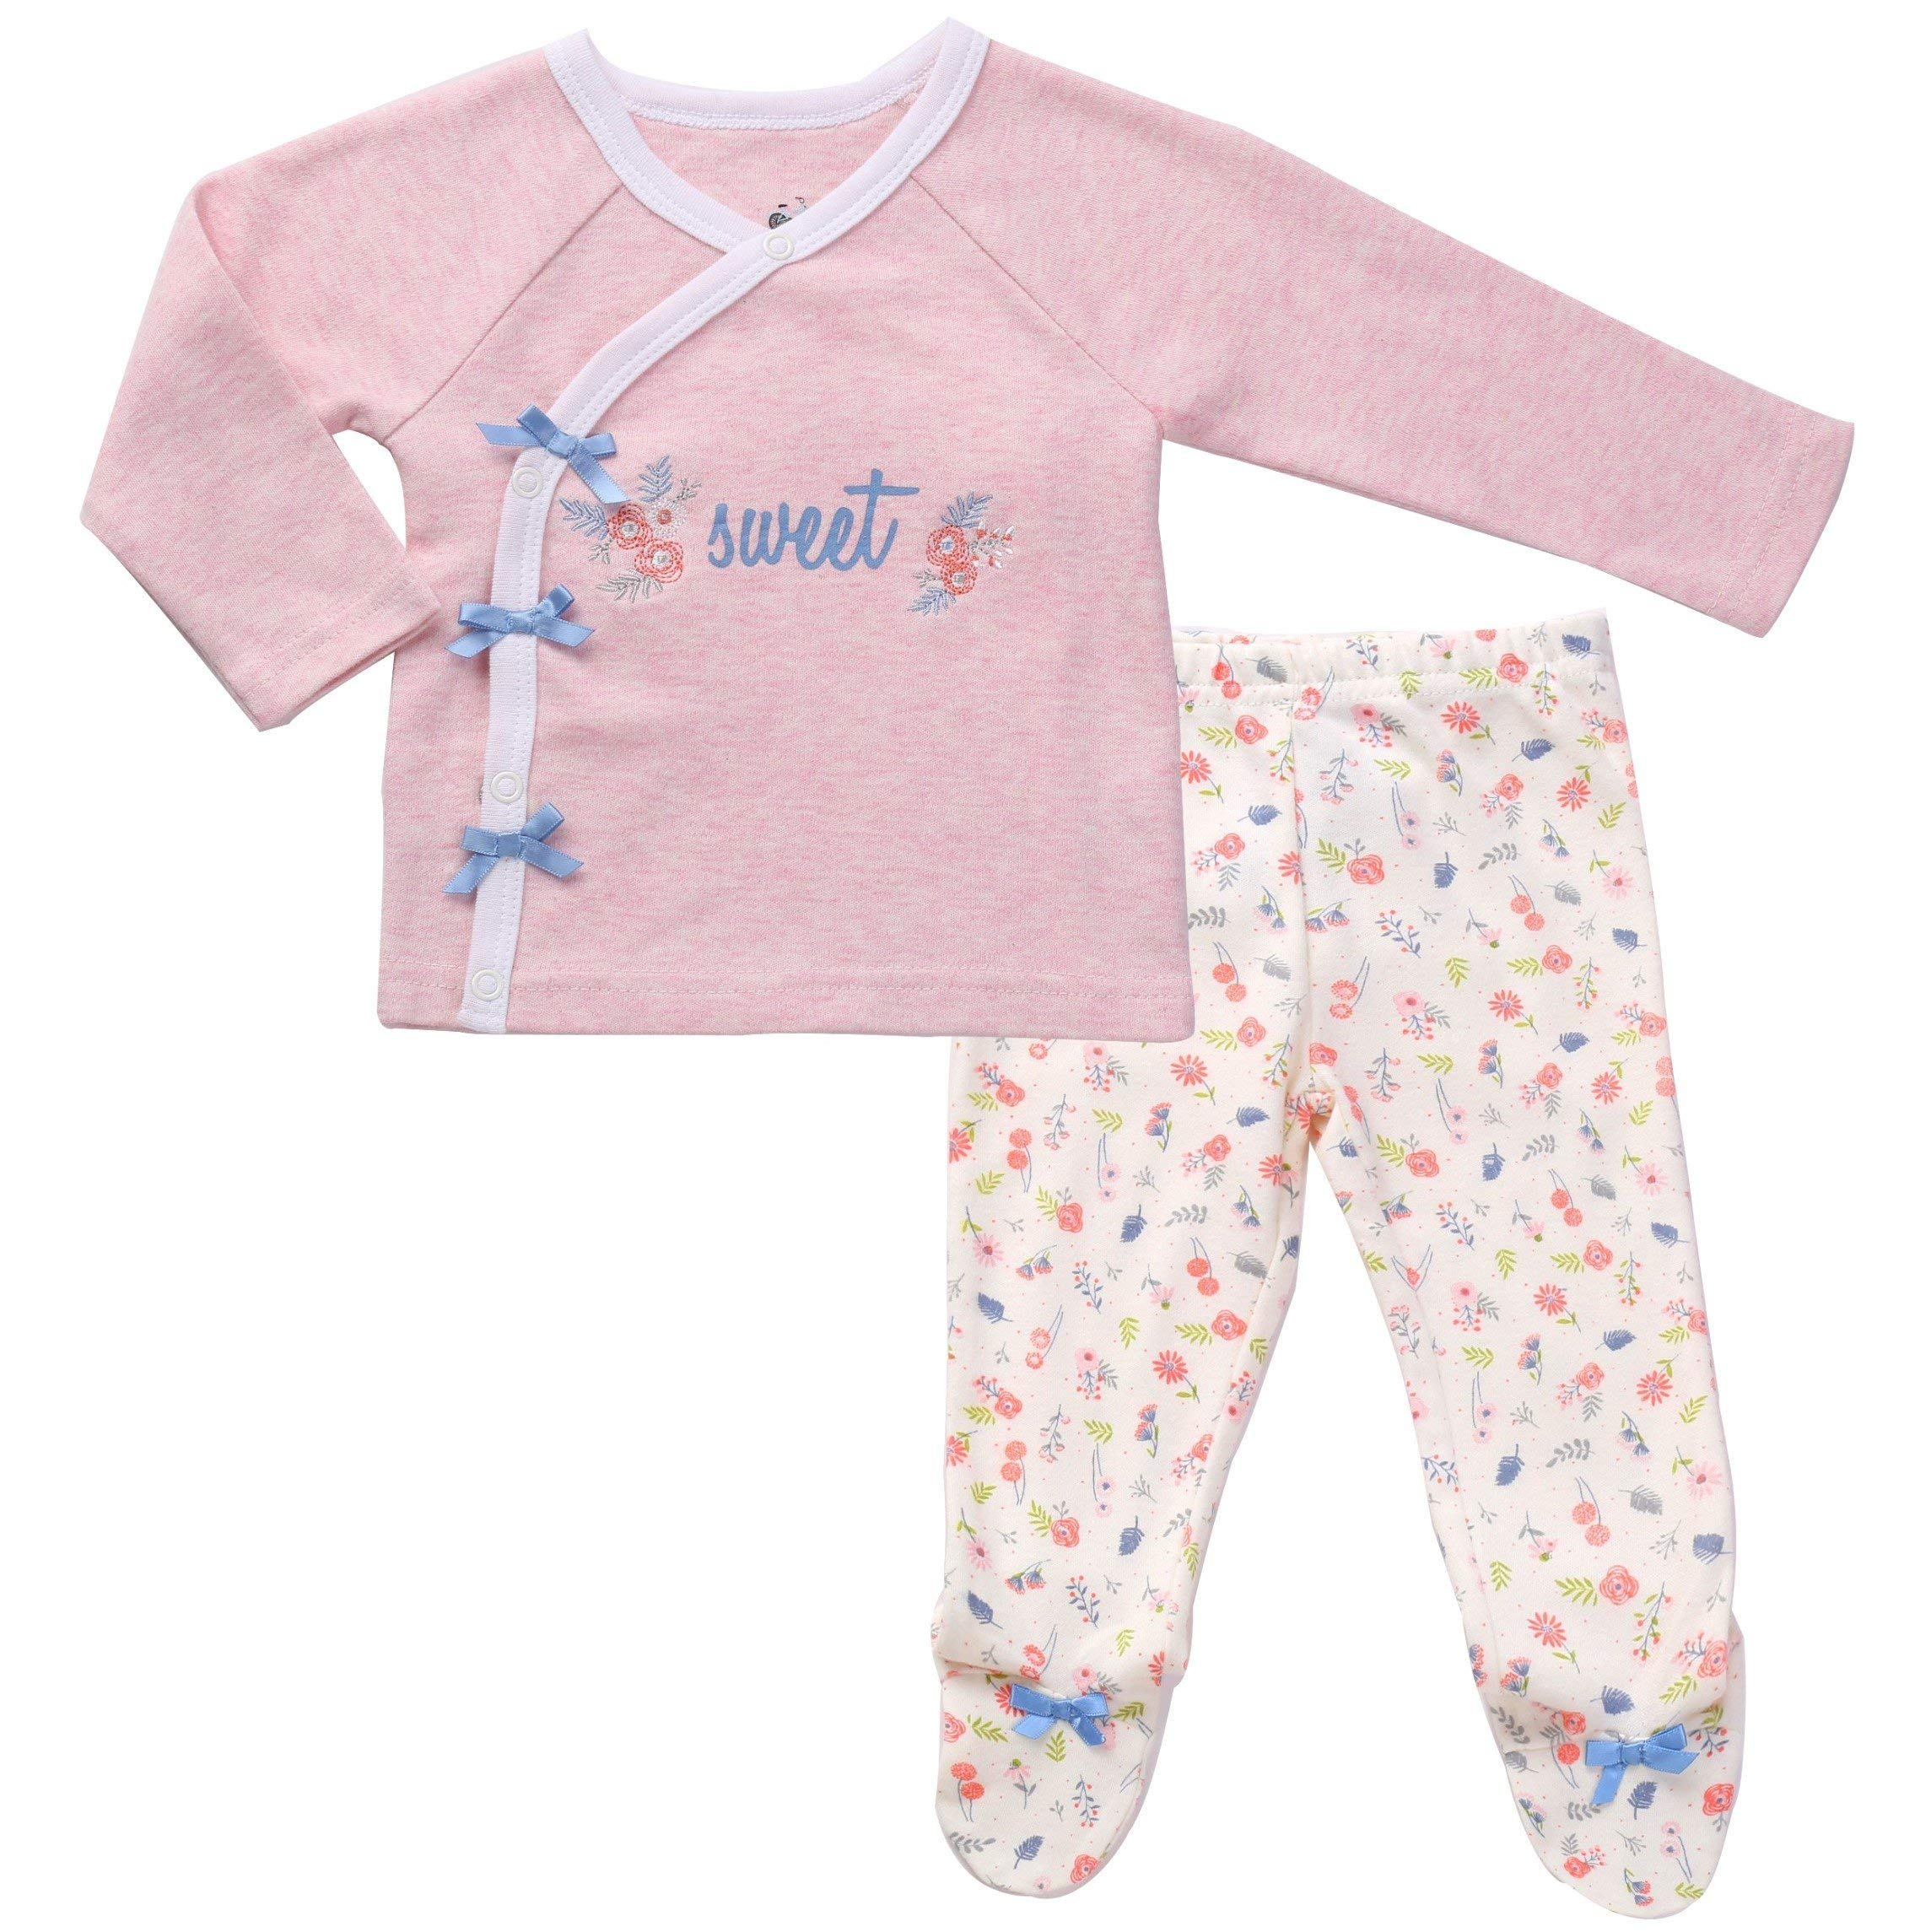 Premature Baby Clothing Patterns Sewing Patterns For Baby